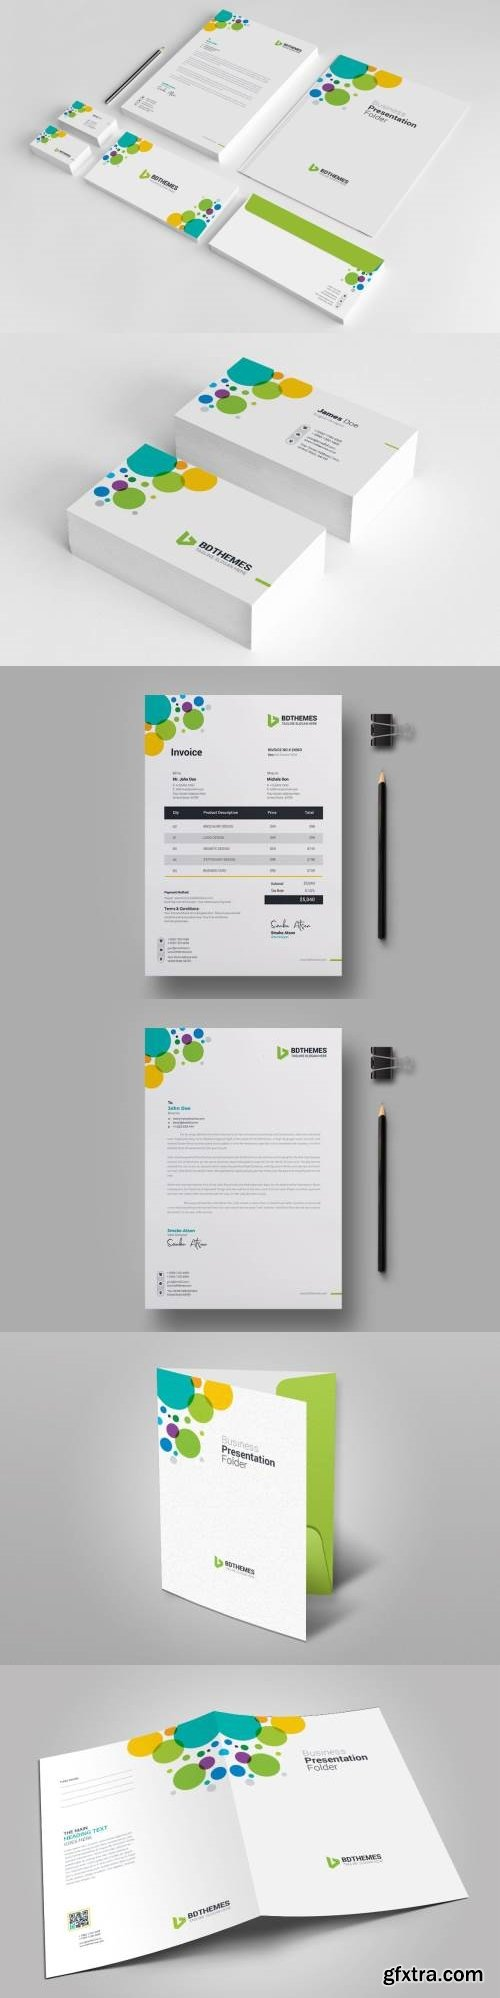 Business stationery template 08 vector photoshop psdafter effects business stationery template 08 cheaphphosting Gallery